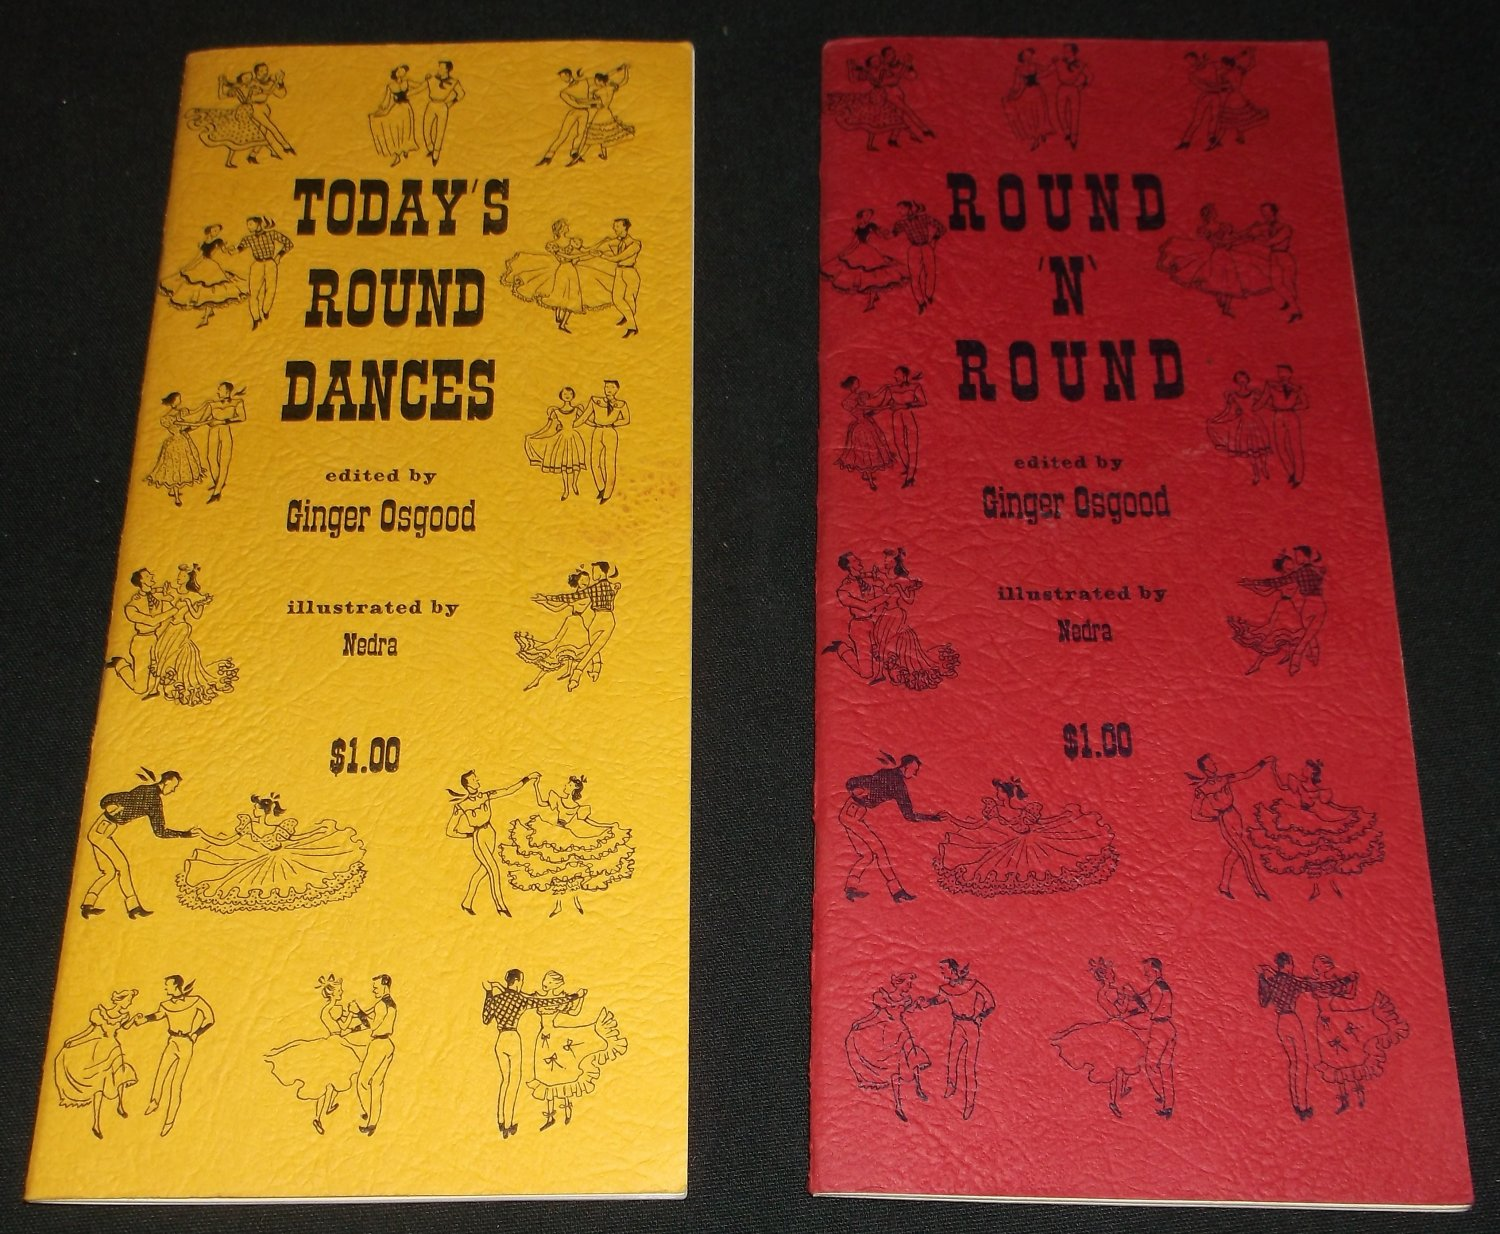 2 Booklets  Todays Round Dance and Round N Round  Ginger Osgood